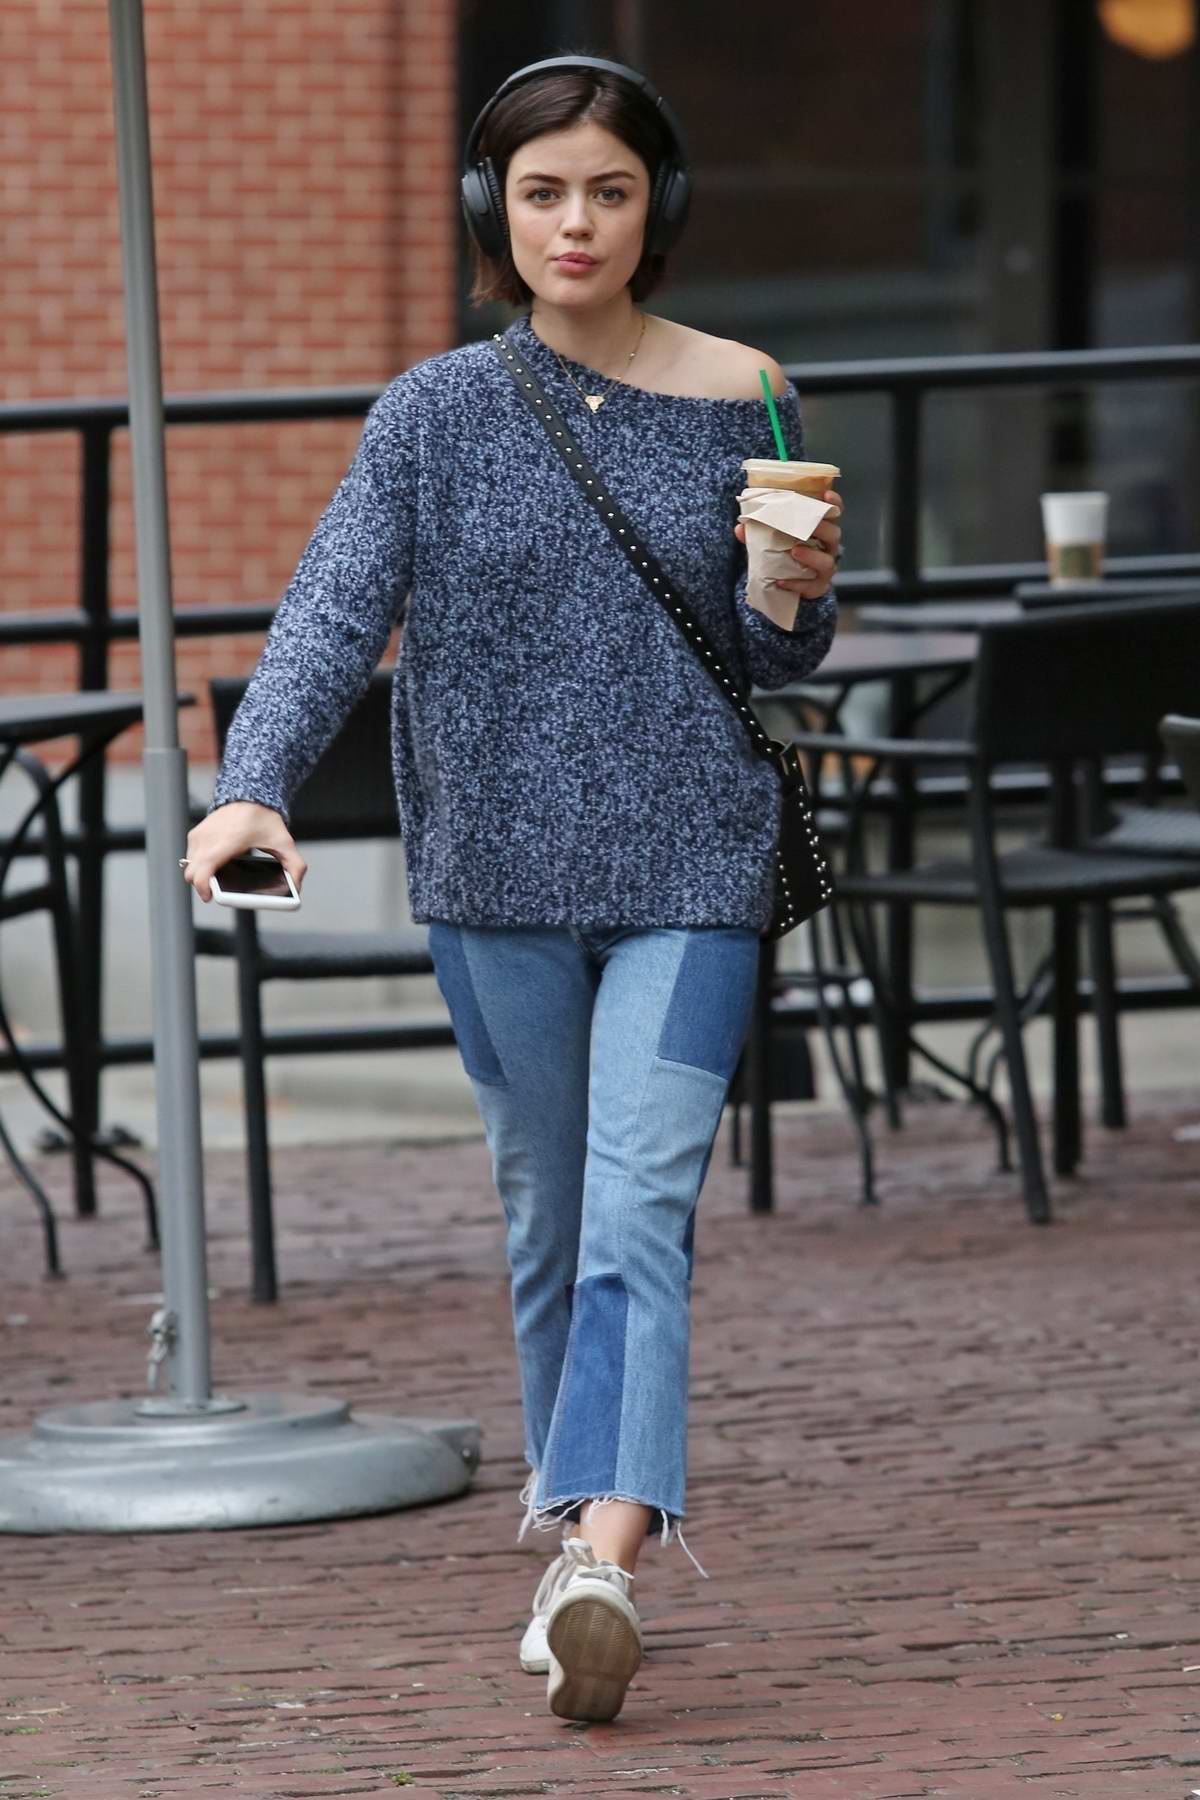 Lucy Hale grabs a morning coffee at Starbucks in Vancouver, Canada